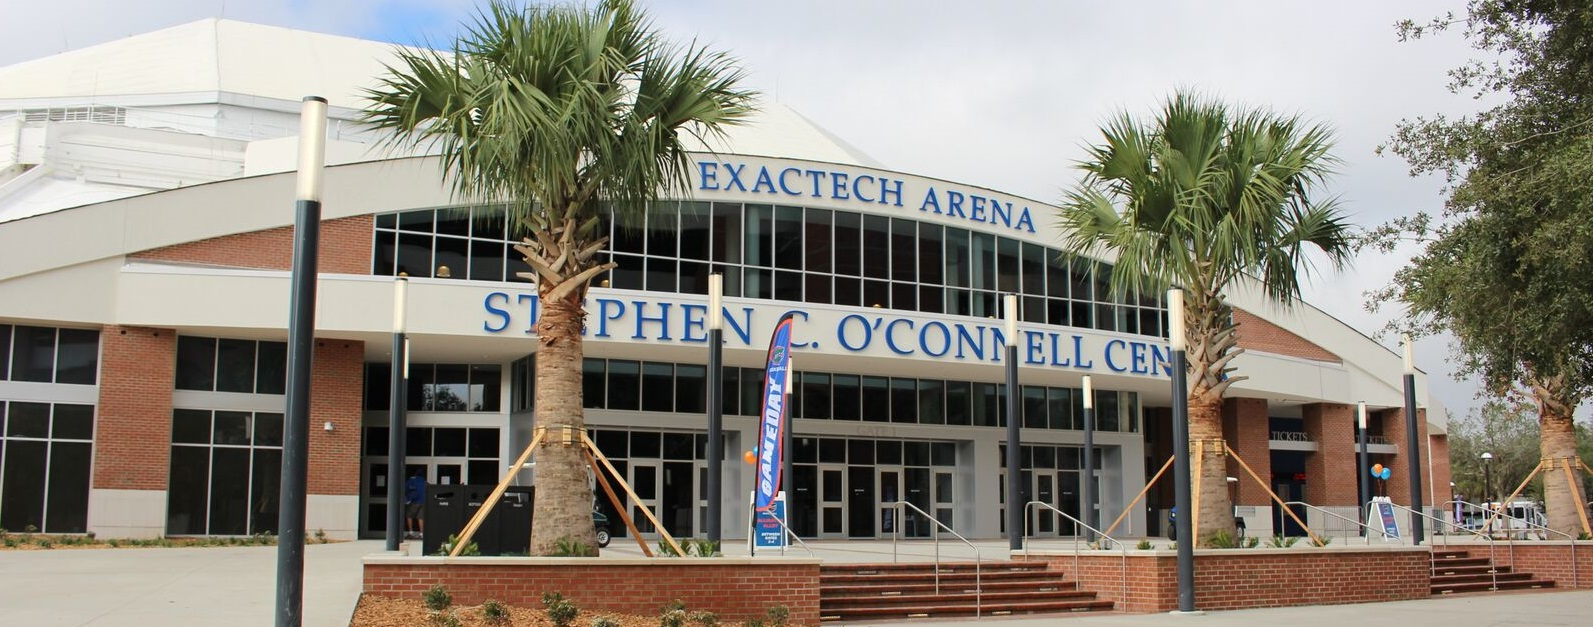 University of Florida, Exactech Arena